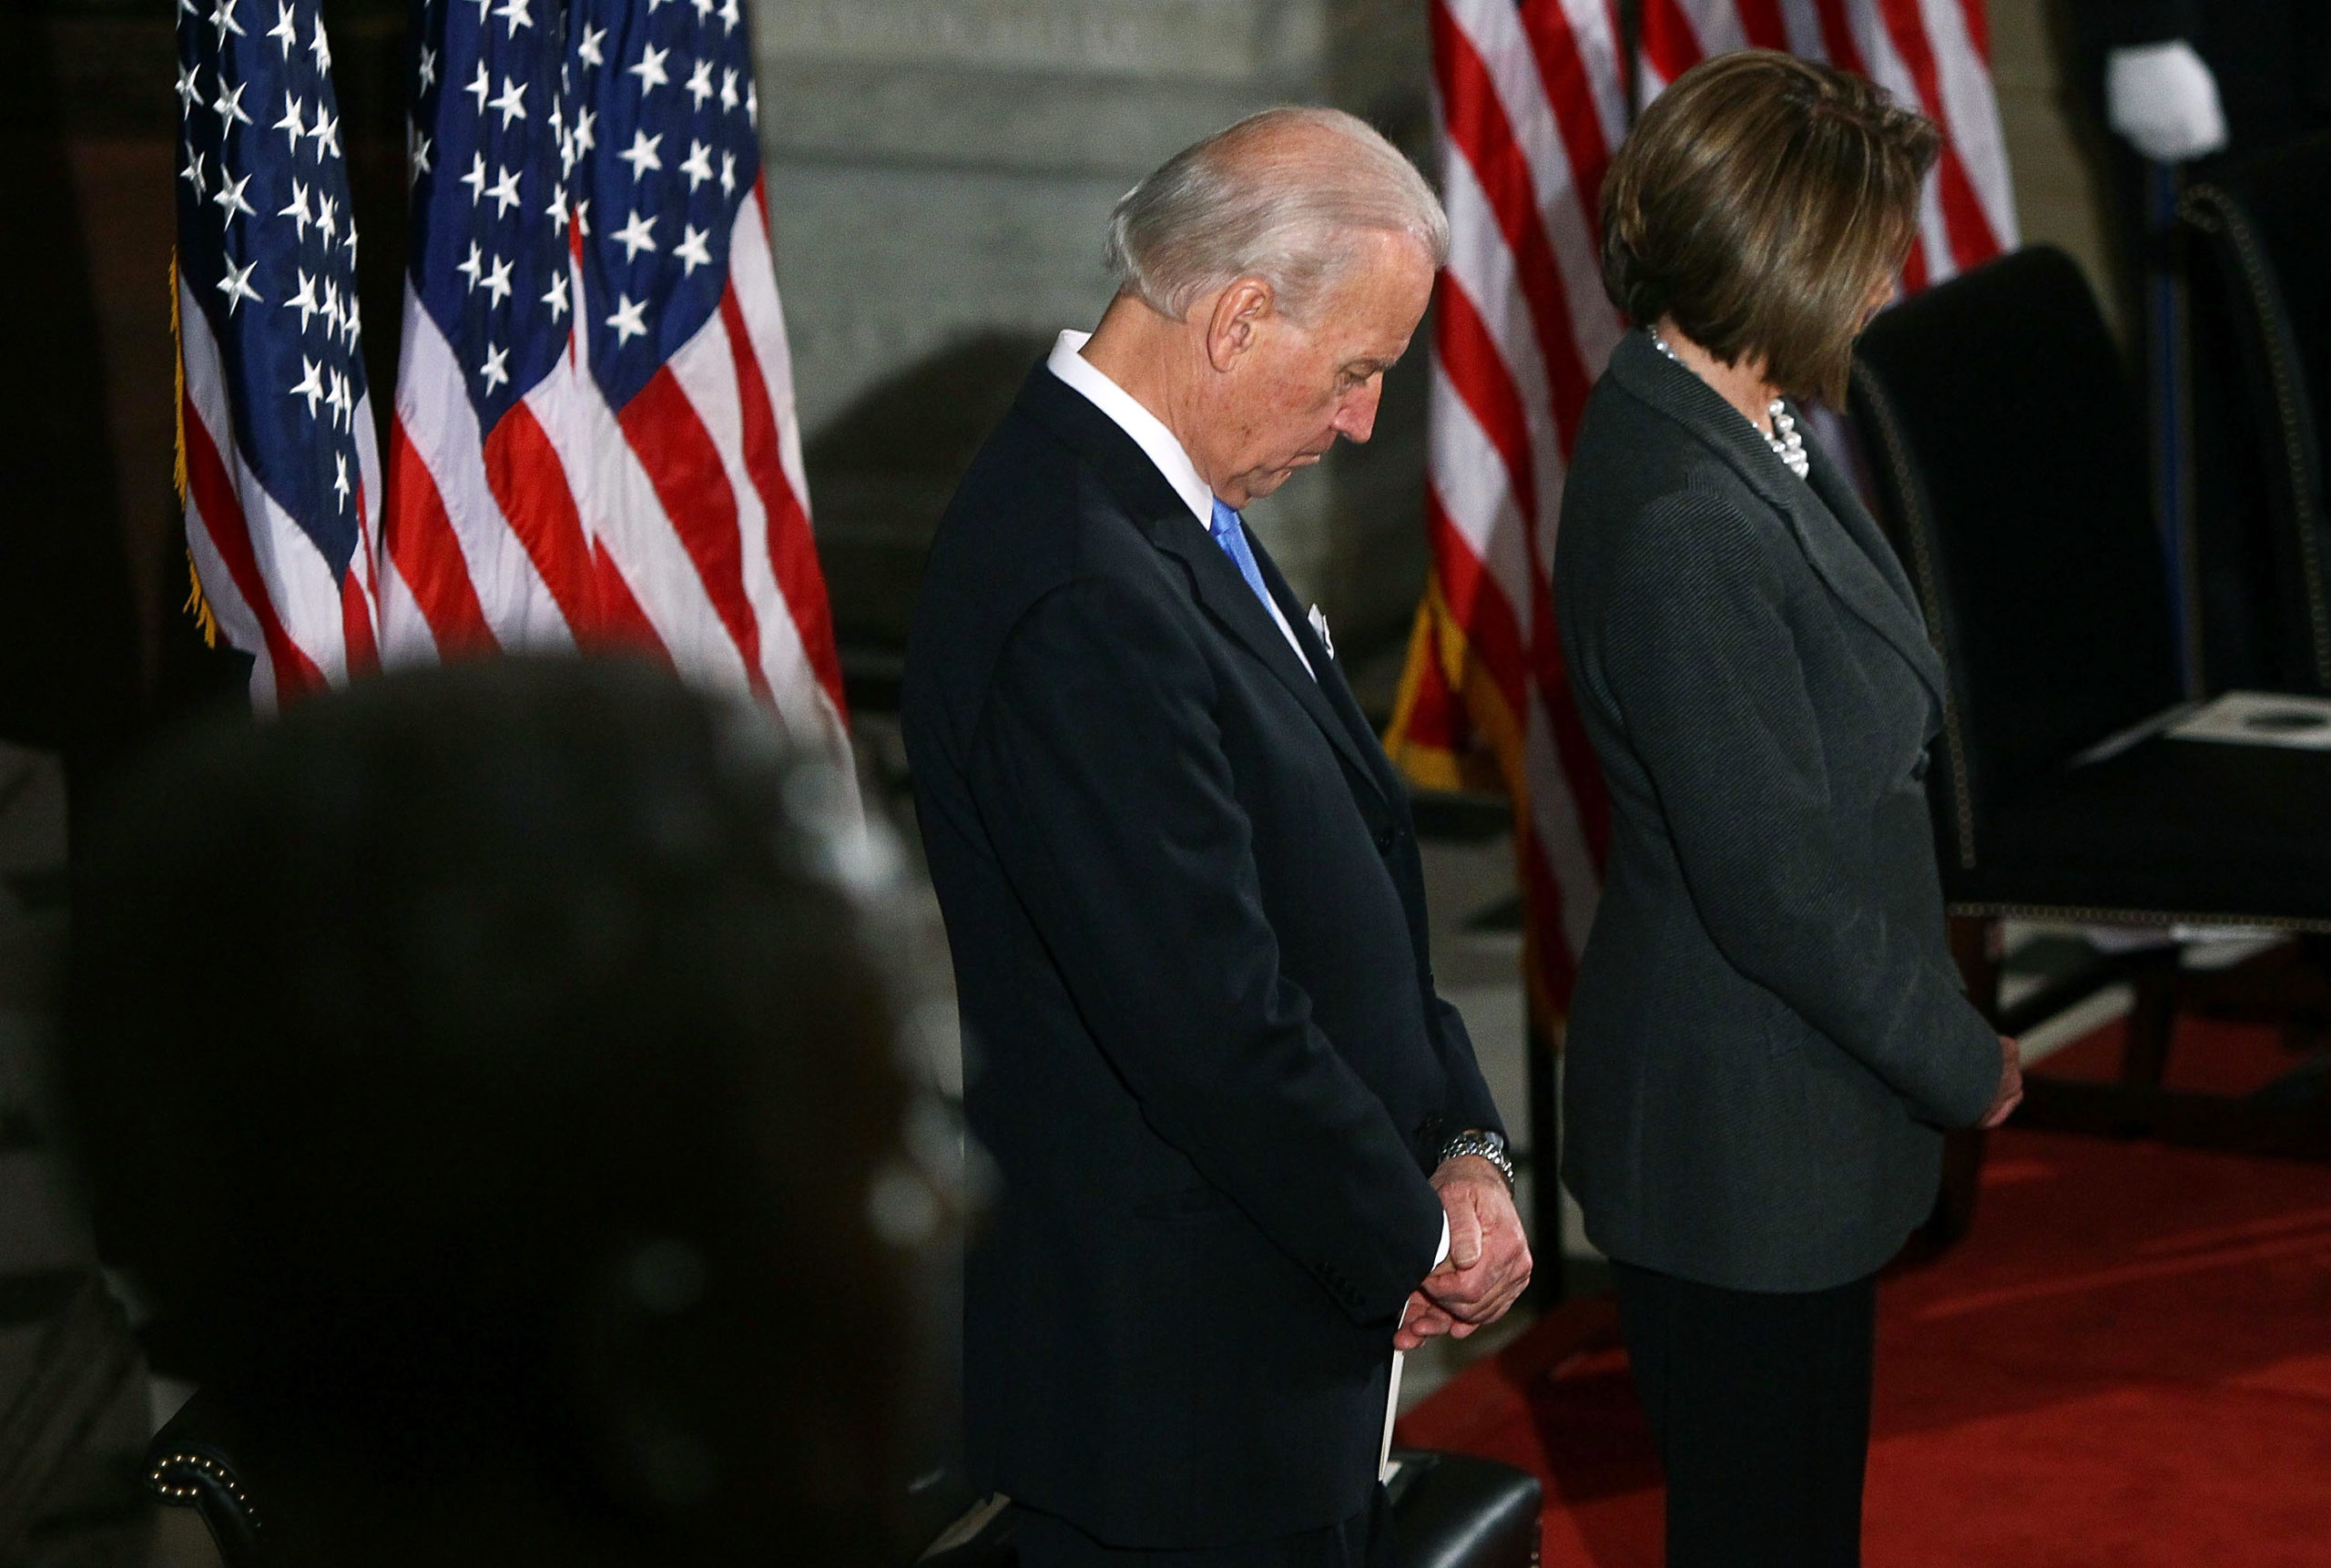 U.S. Vice President Joe Biden and Speaker of the House Nancy Pelosi bow their heads in prayer at a memorial service for Rep. John Murtha at the U.S. Capitol March 3, 2010 in Washington, DC. (Win McNamee/Getty Images)